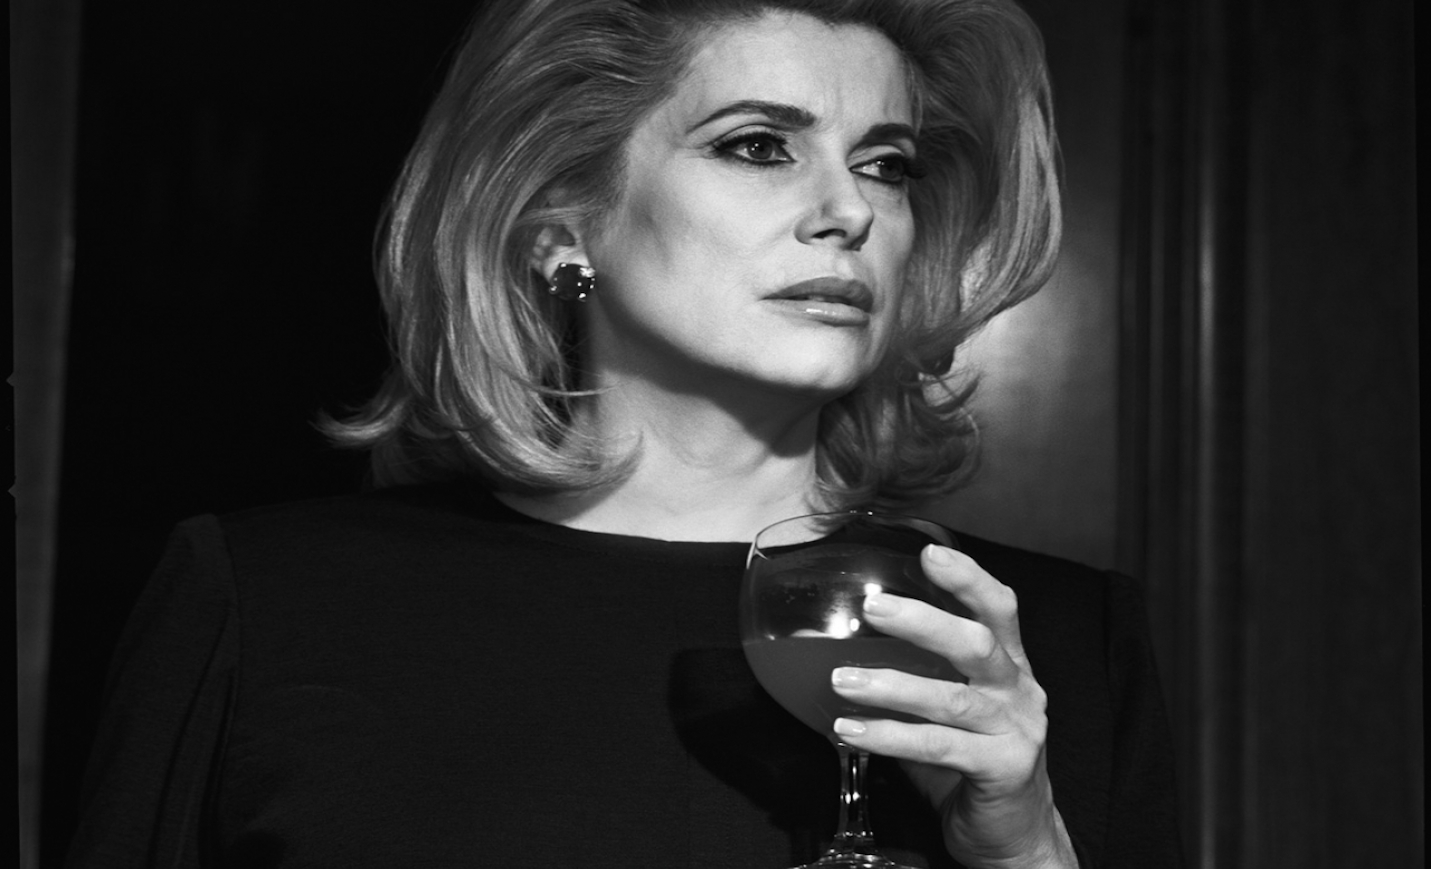 michel-comte-women-catherine-deneuve